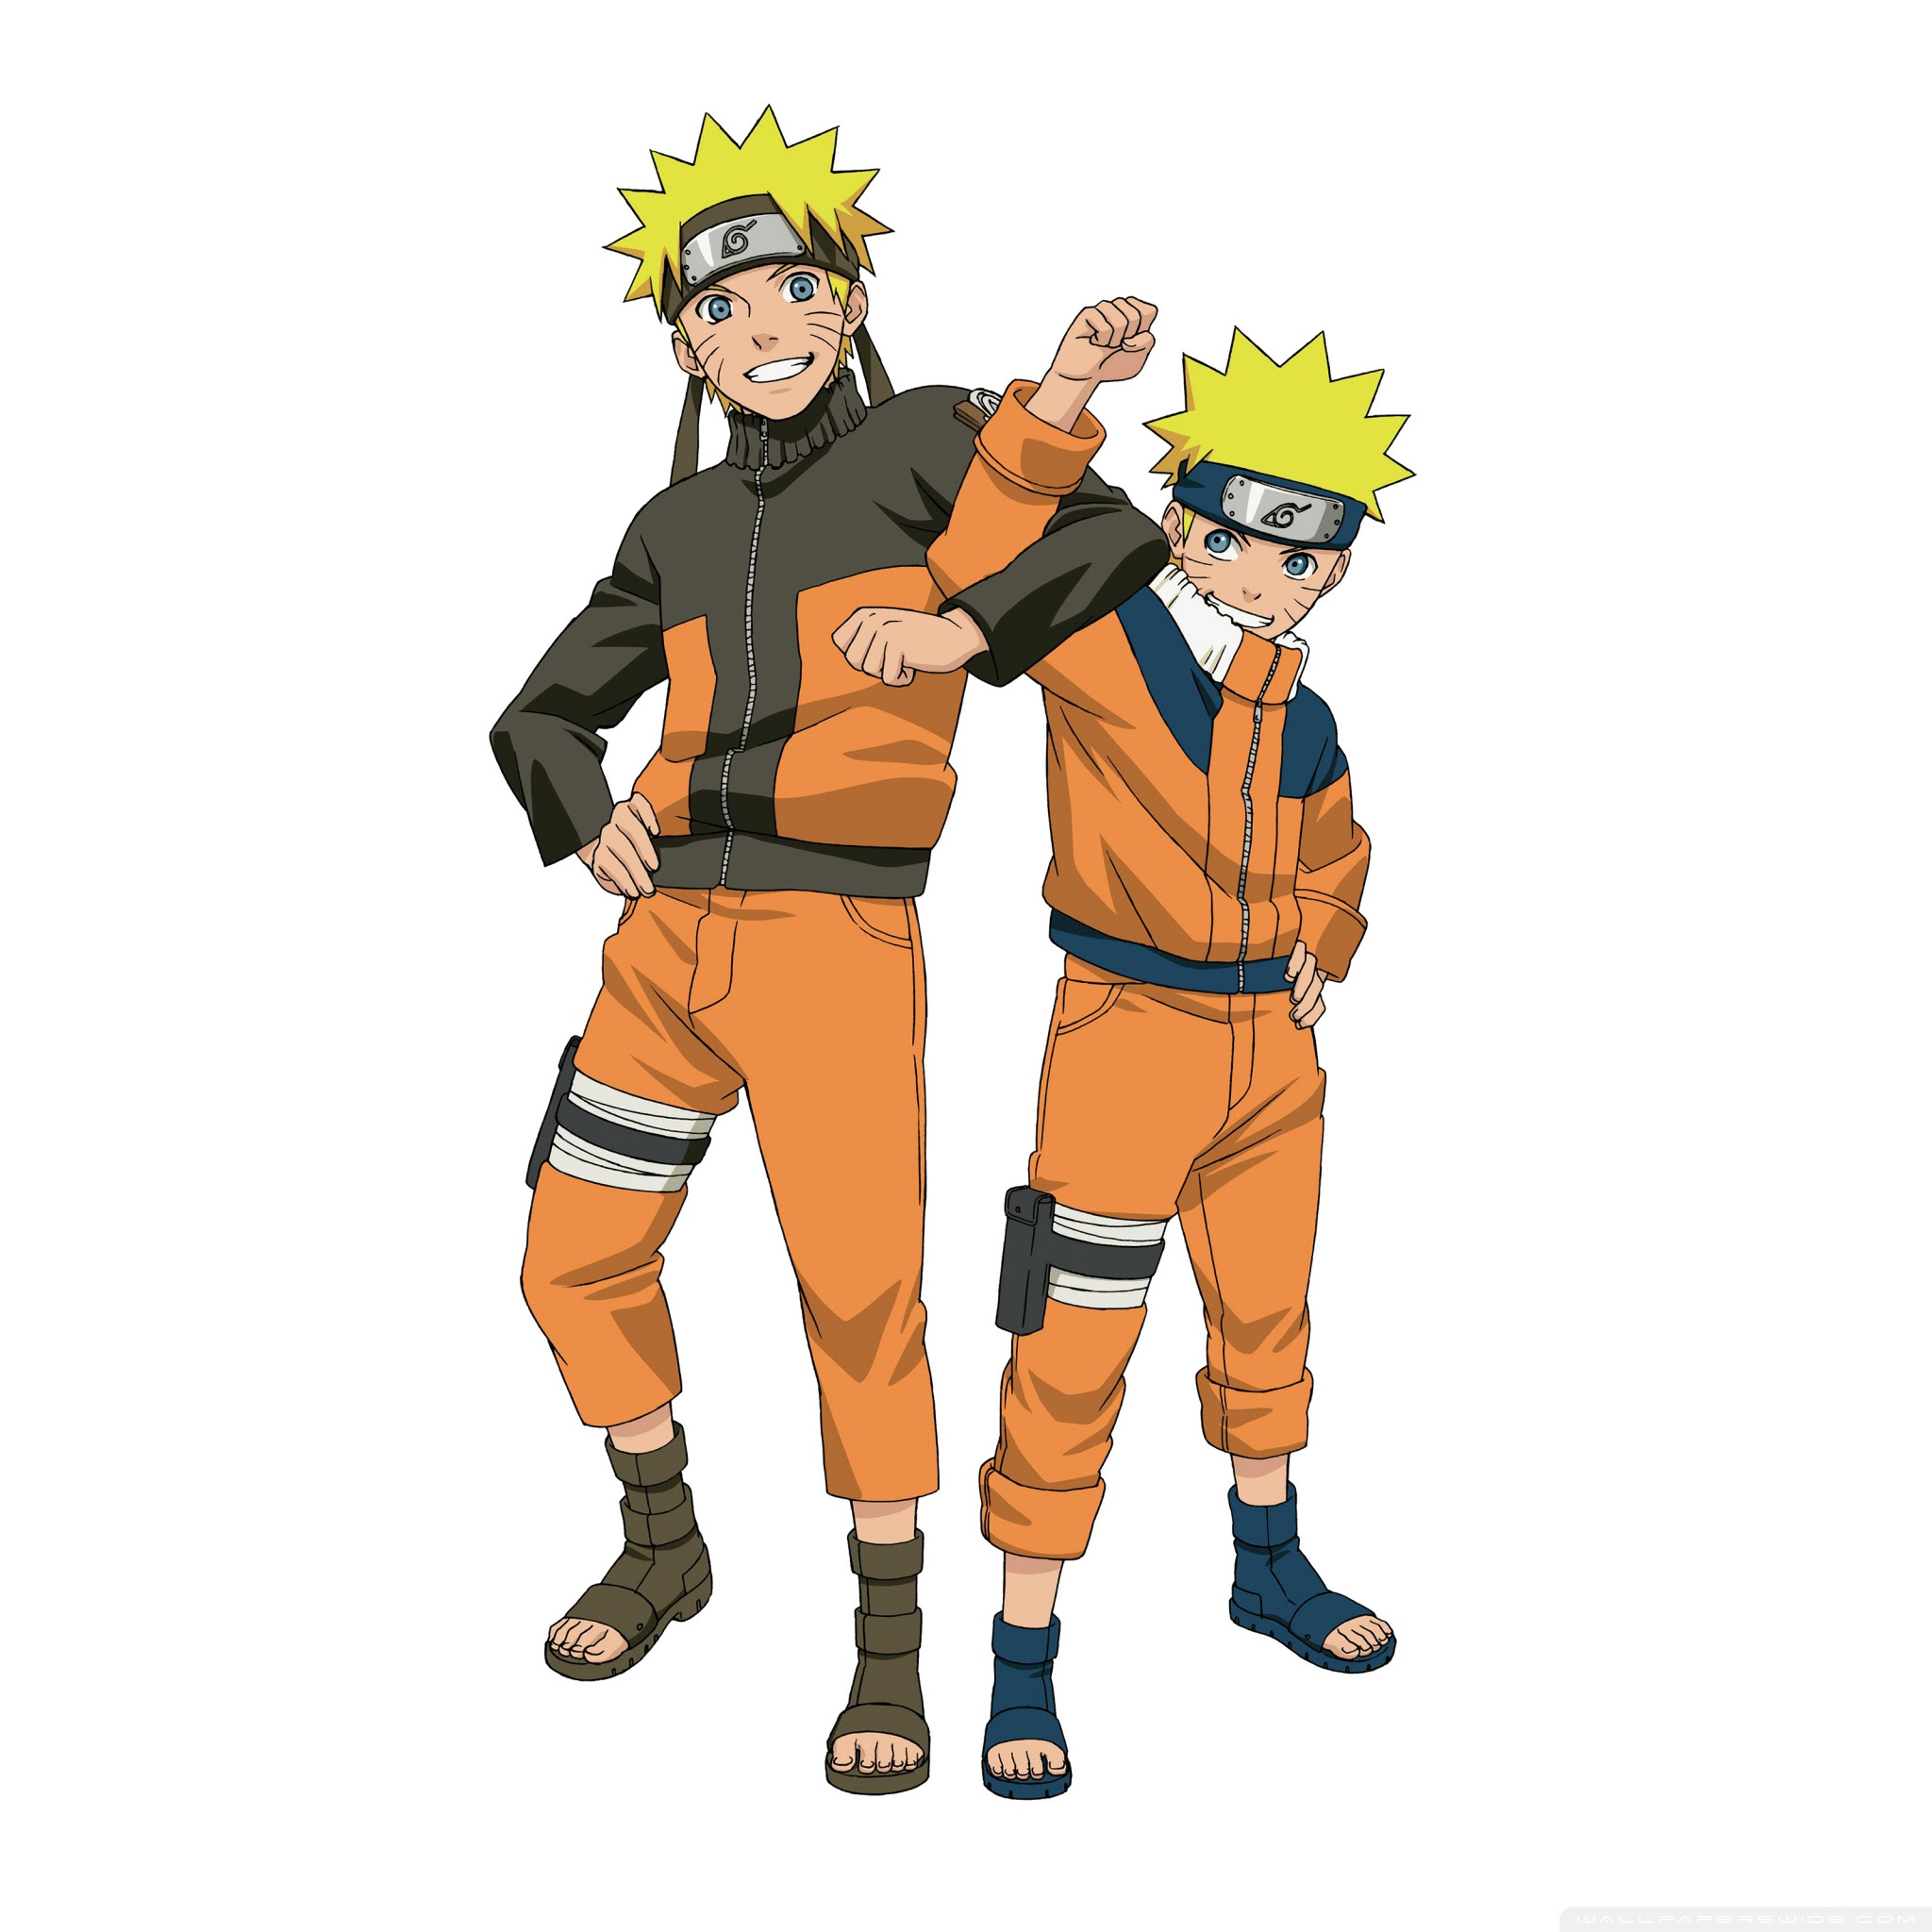 Download 8300 Koleksi Wallpaper Naruto Png HD Terbaru